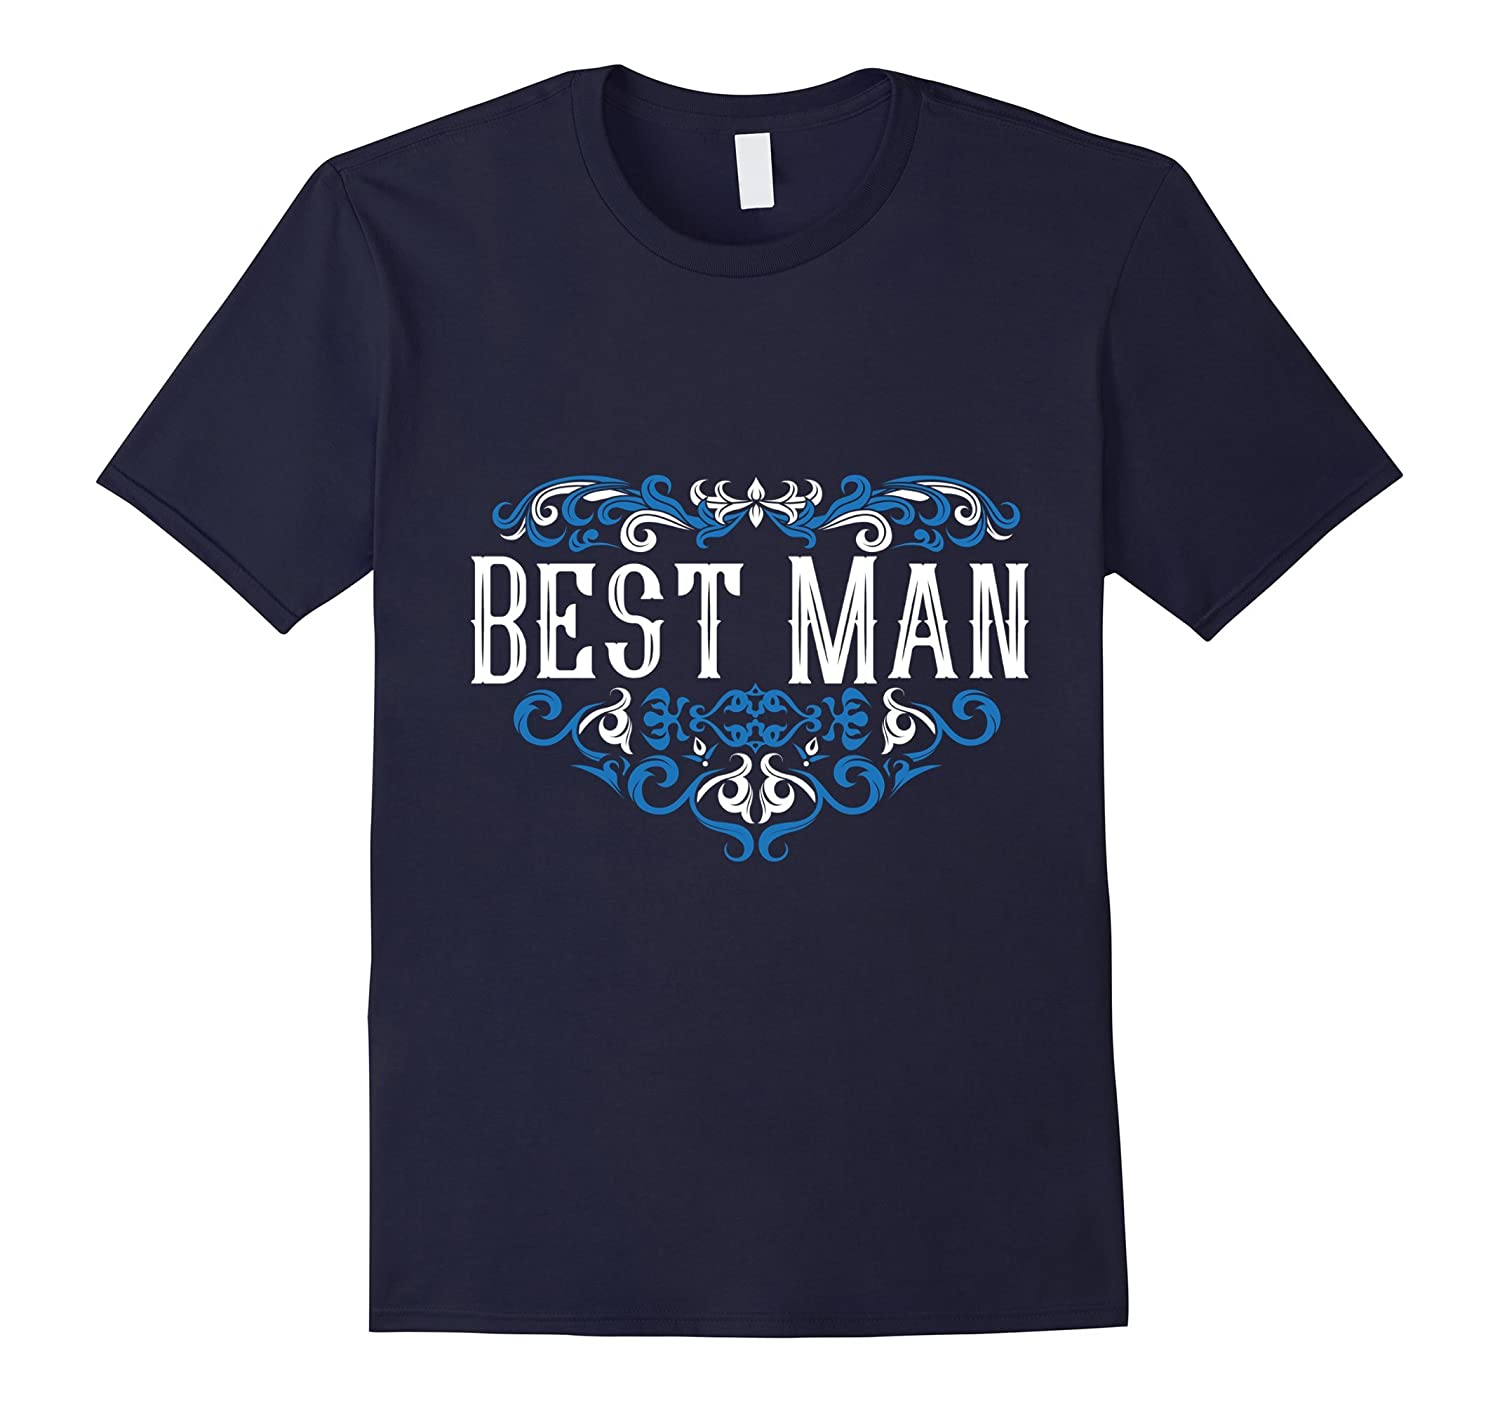 Best Man Shirt Bachelor Party Groom Bride Tattoo Wedding-TD